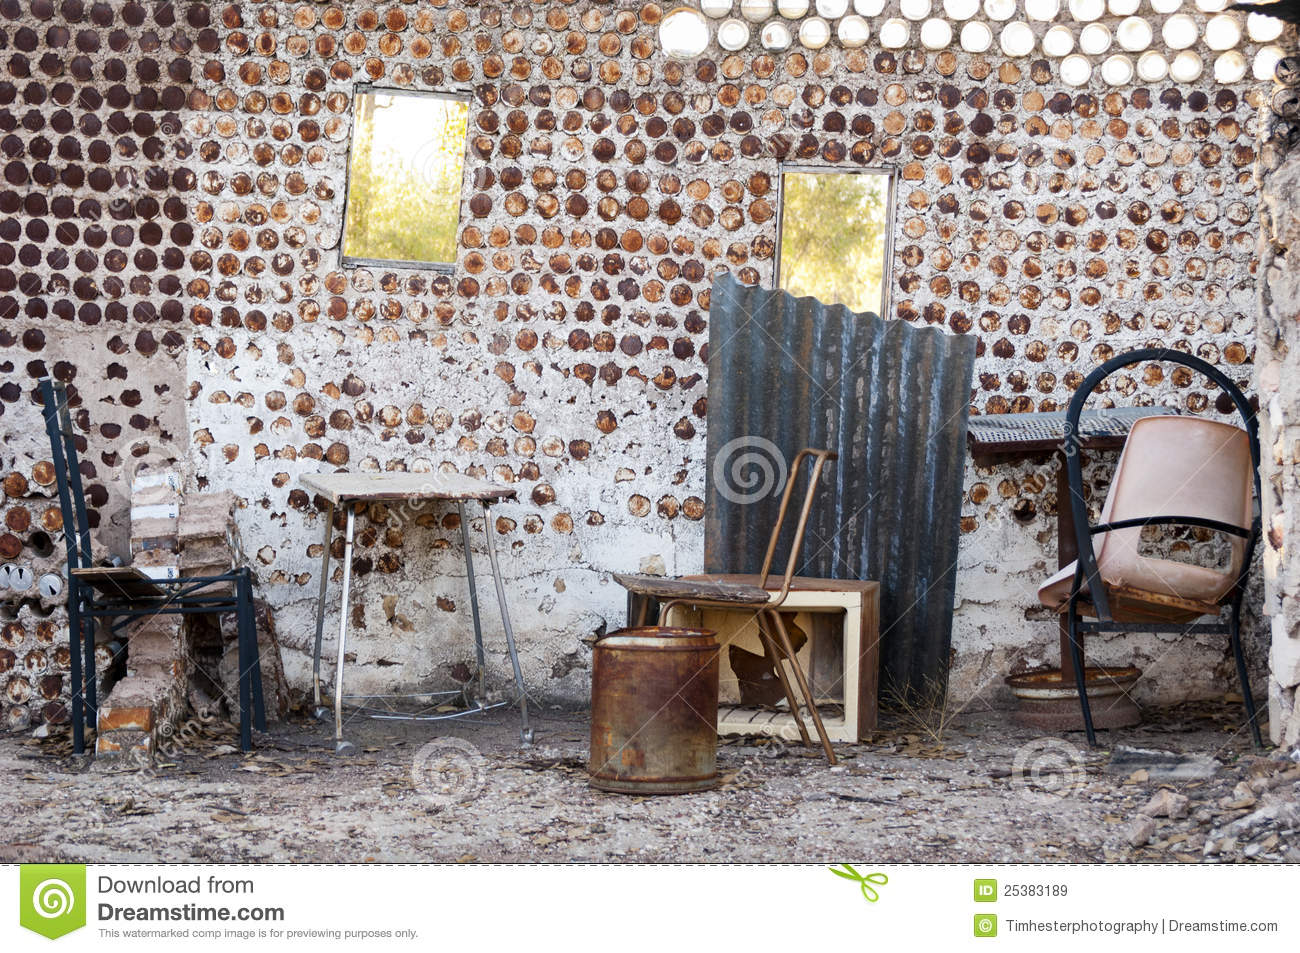 Interior of an old home built from tin cans with old furniture.